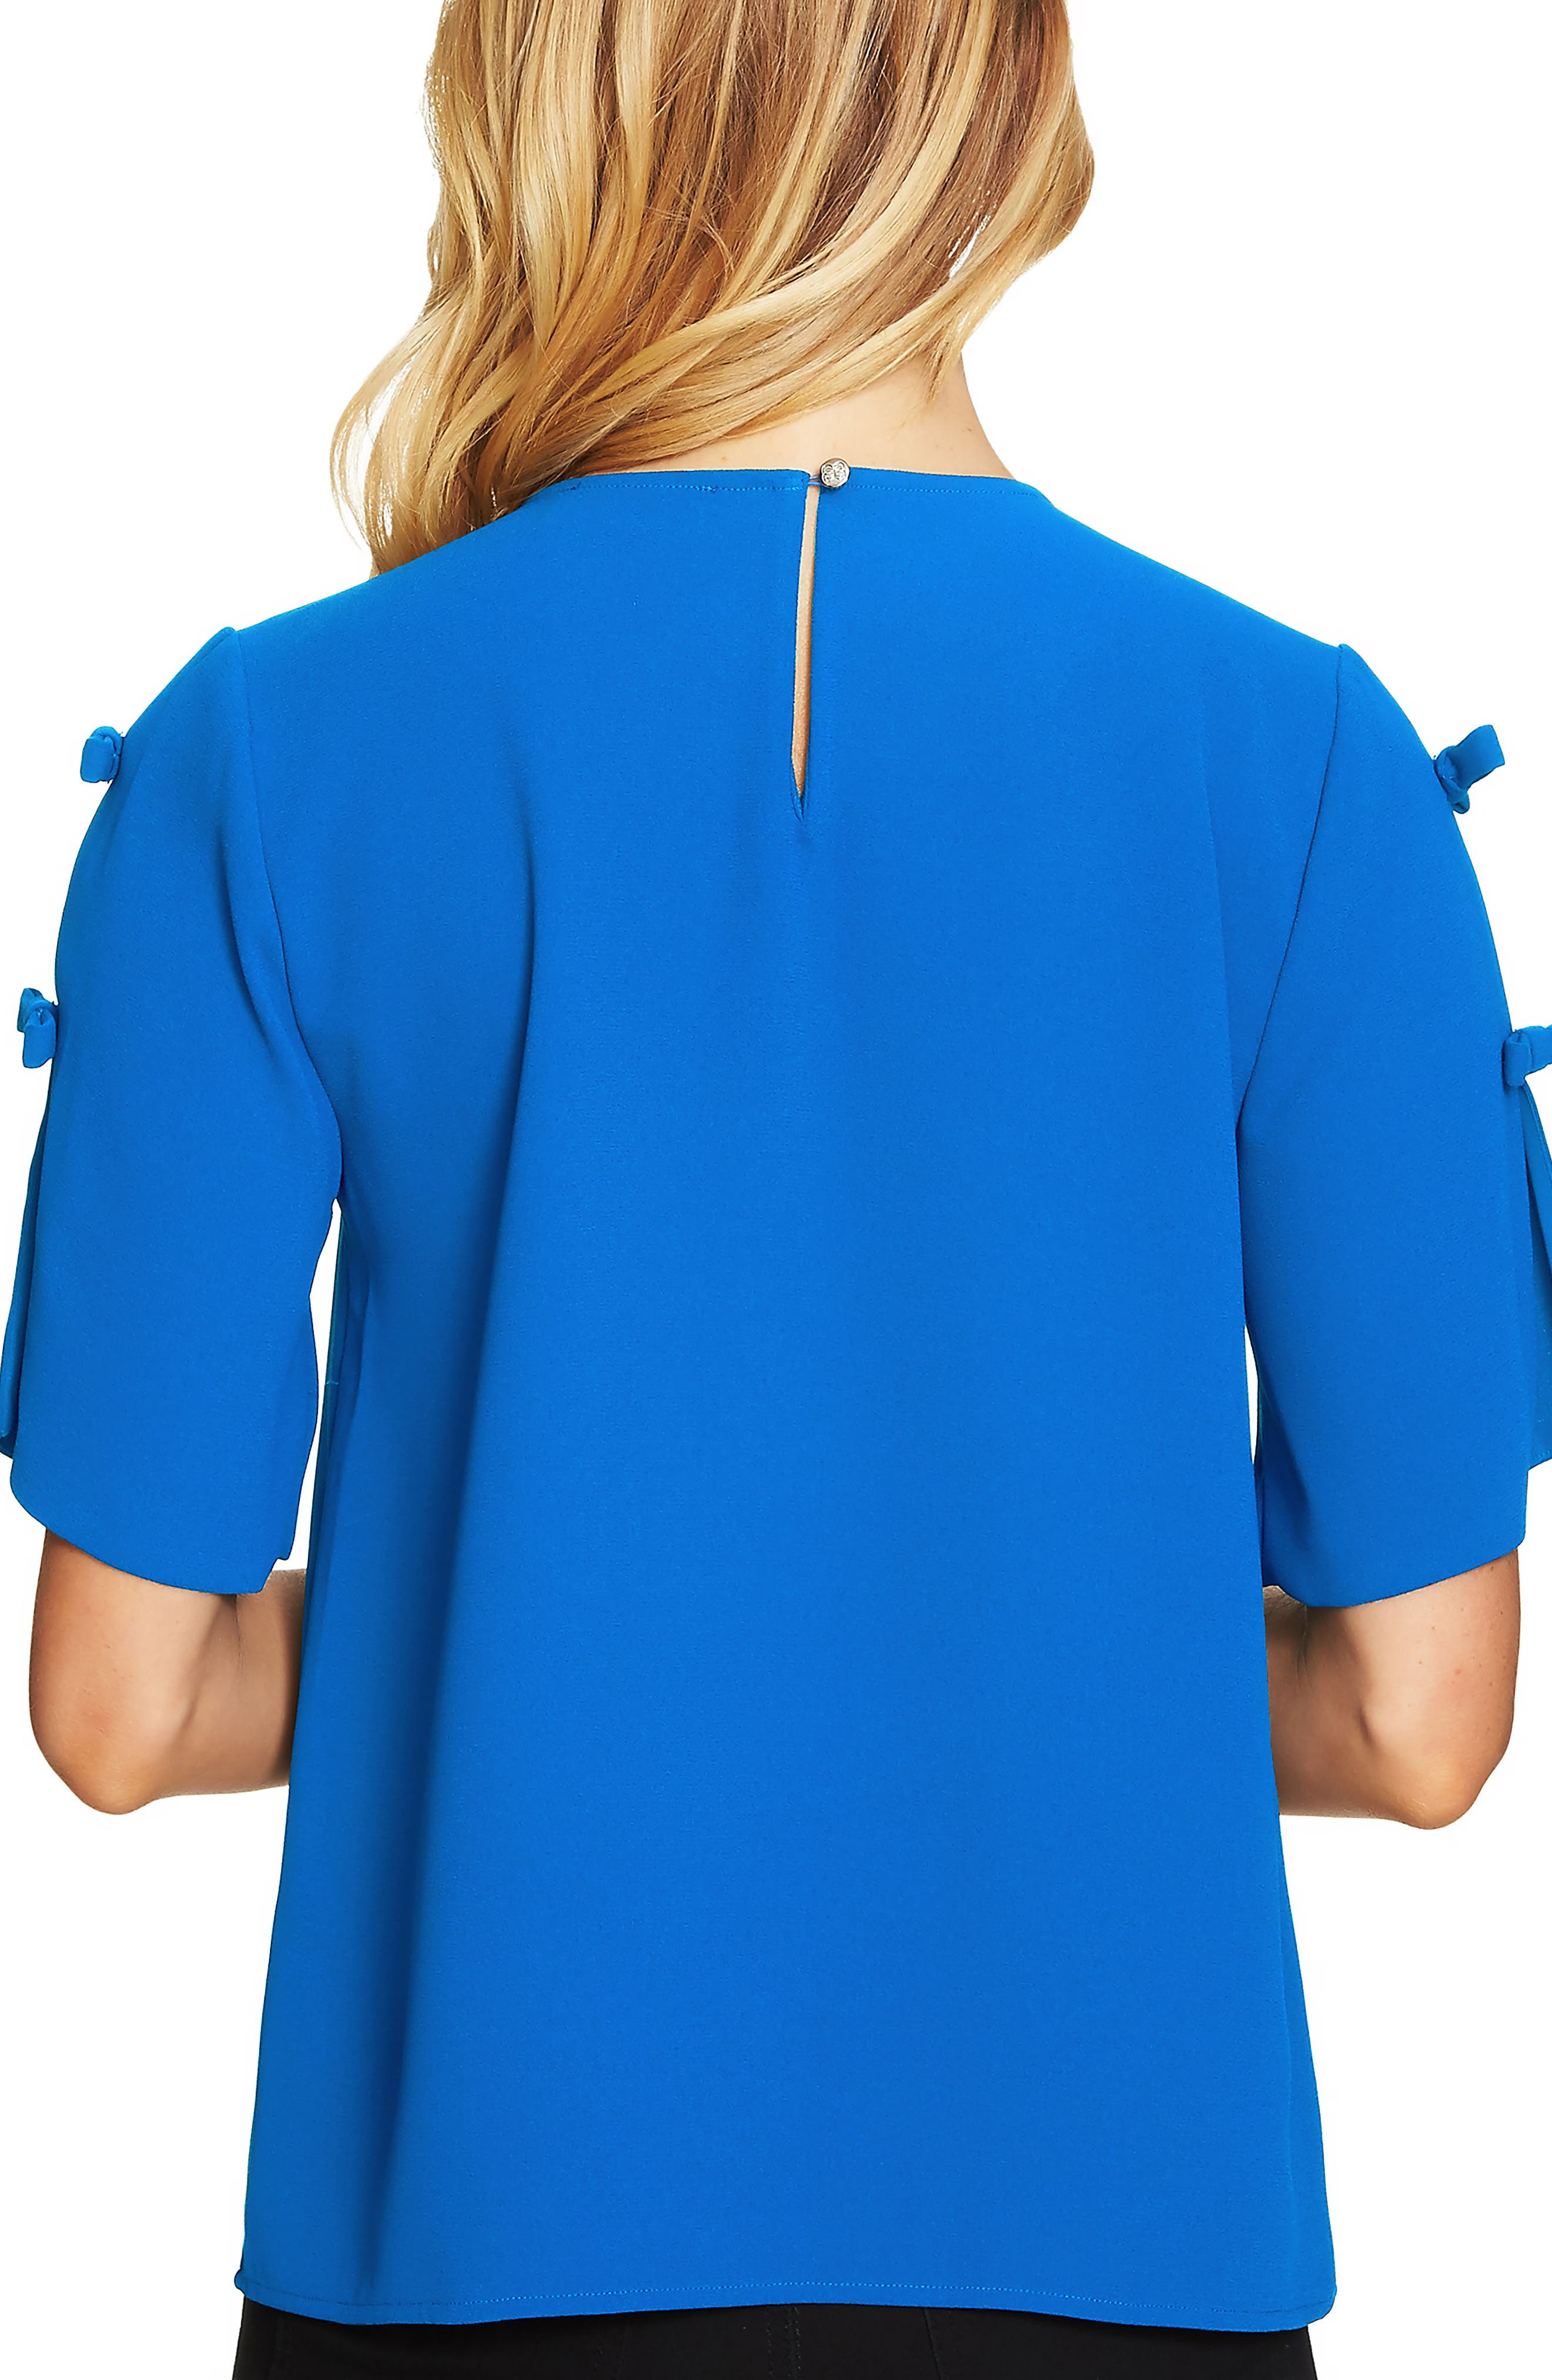 Split Sleeve Moss Crepe Blouse,                             Alternate thumbnail 2, color,                             418